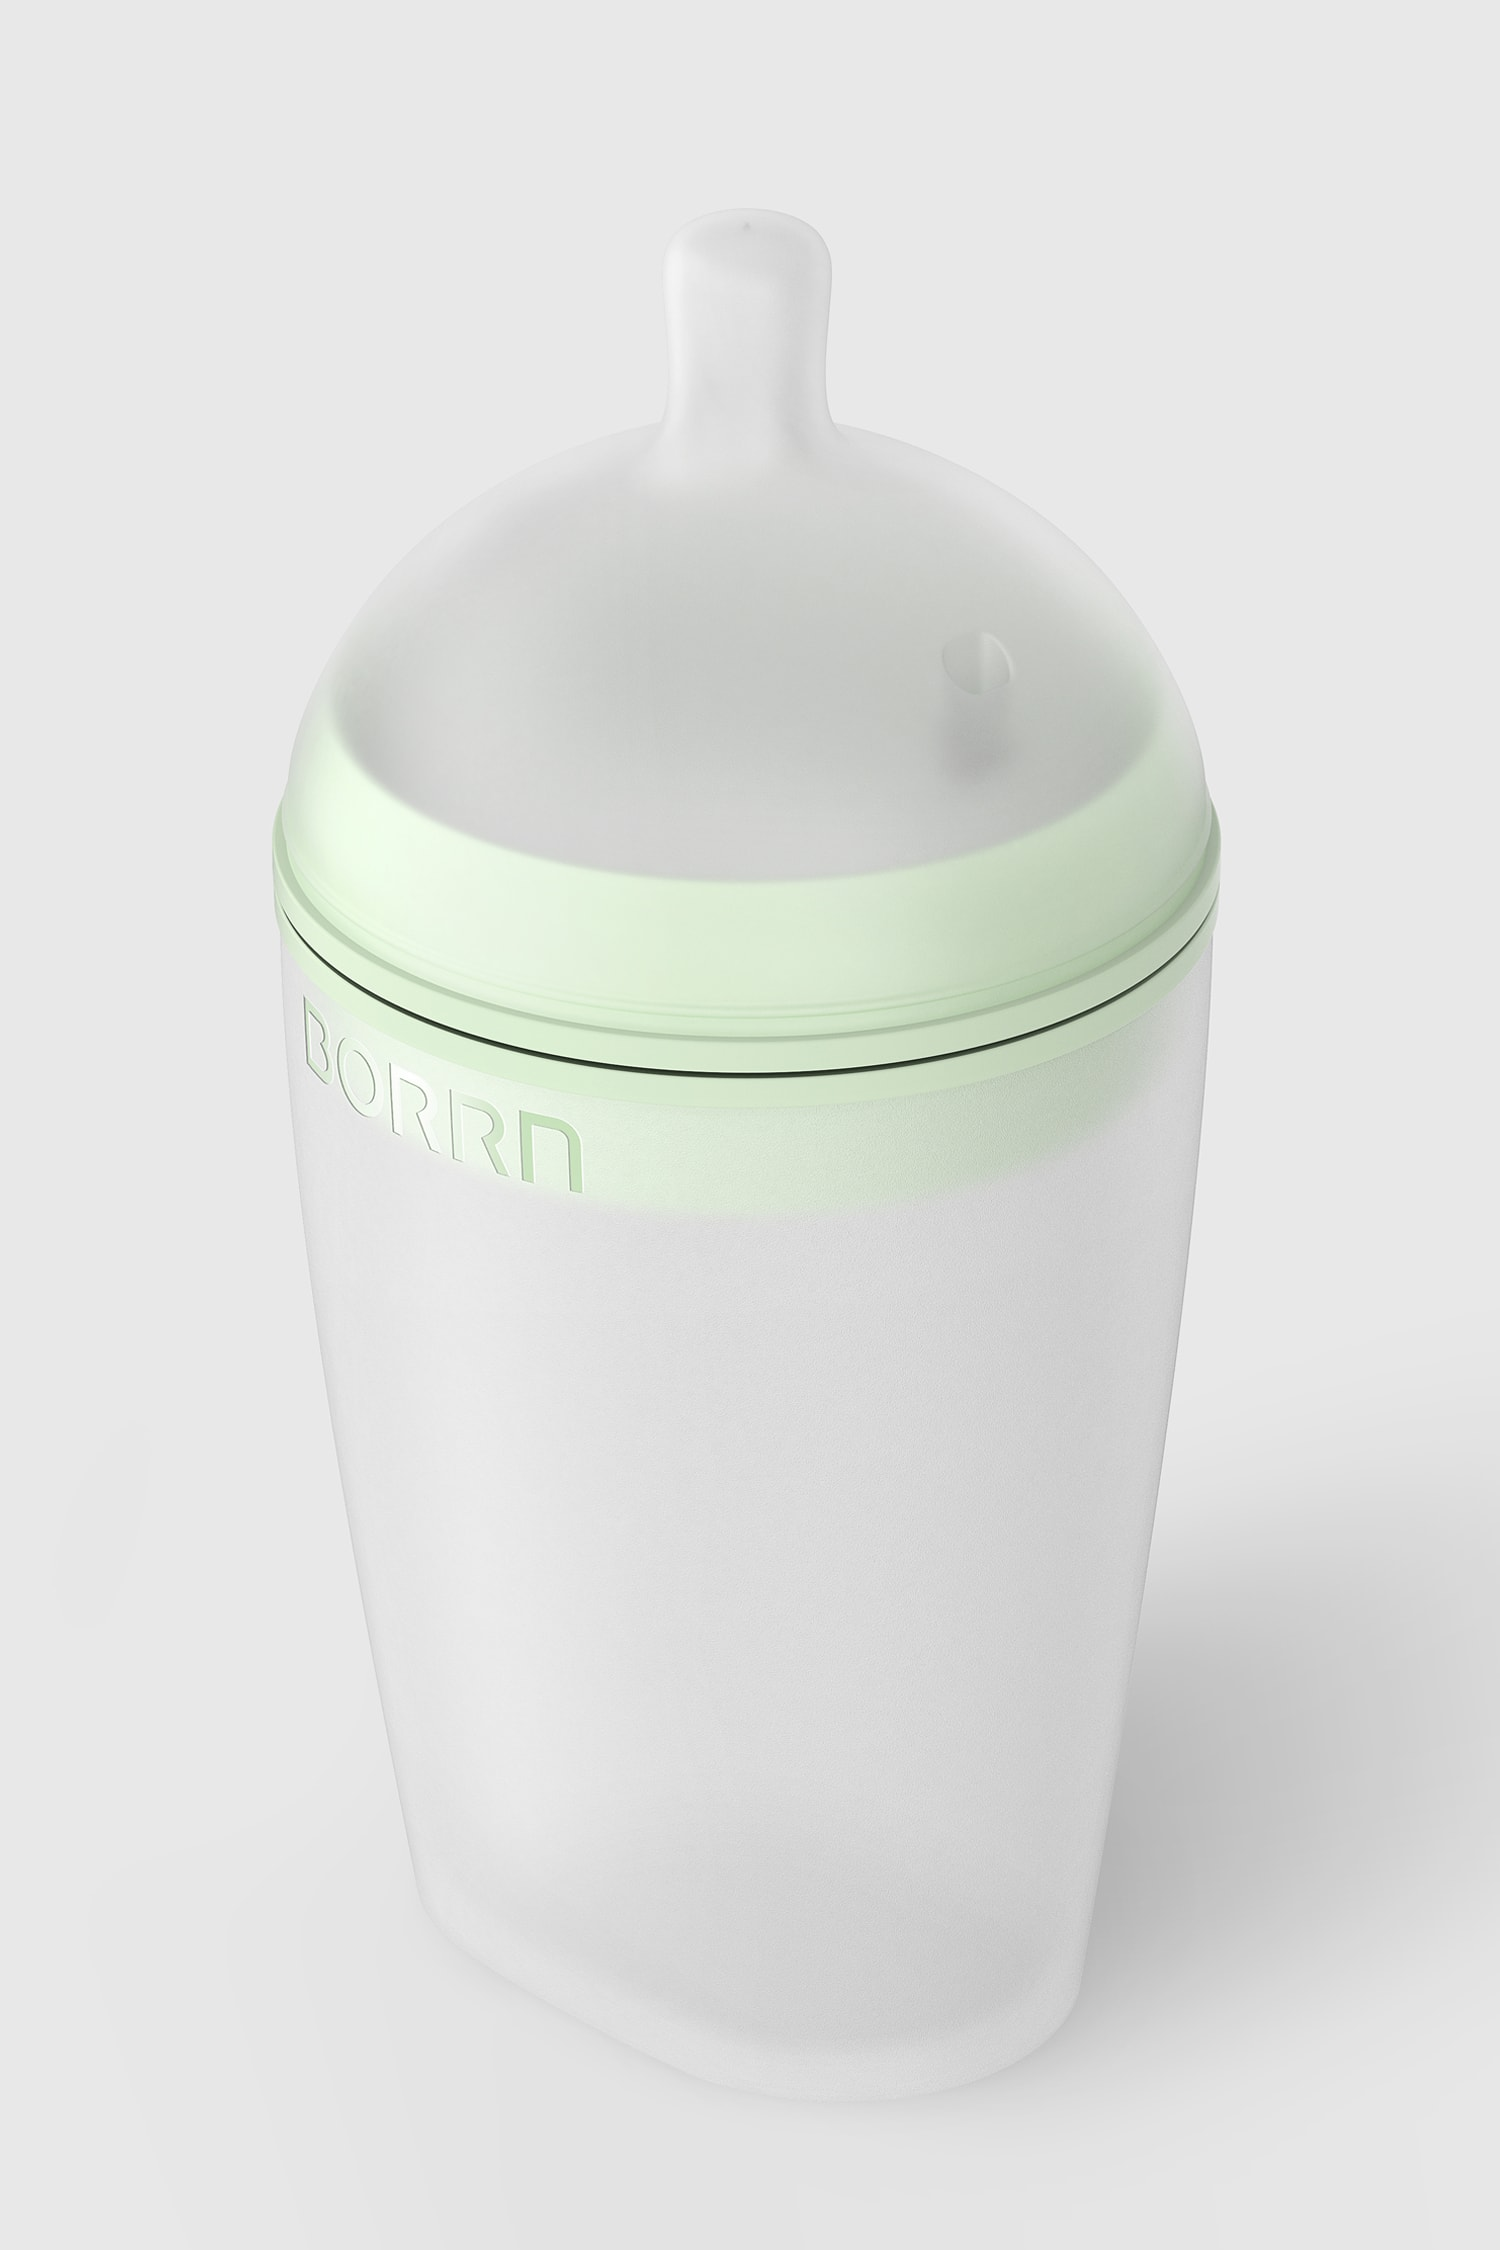 Perspective view of the large Borrn bottle, green on a green background.